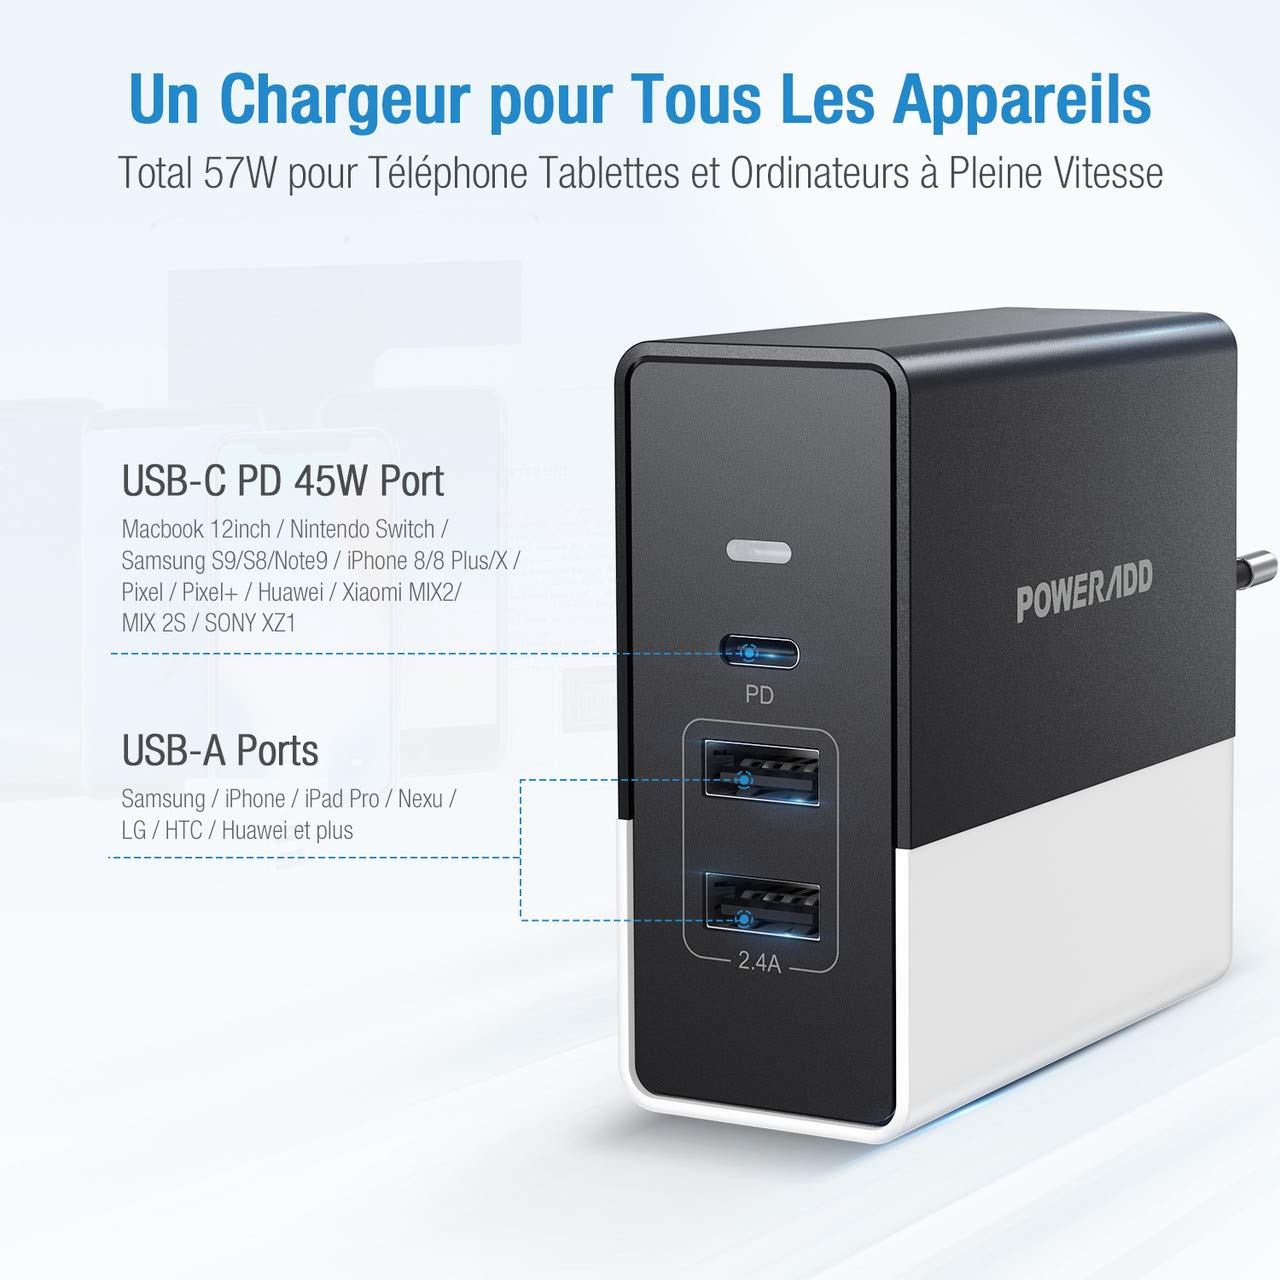 POWERADD USB-C Chargeur Secteur USB 57W 3 Ports avec 1 Port Type-C Power Delivery 3.0 45W Chargeur Mural Universel pour iPhone XS/XS Max, MacBook, Samsung Galaxy S8 / Note 8, Huawei, Nexus, LG etc